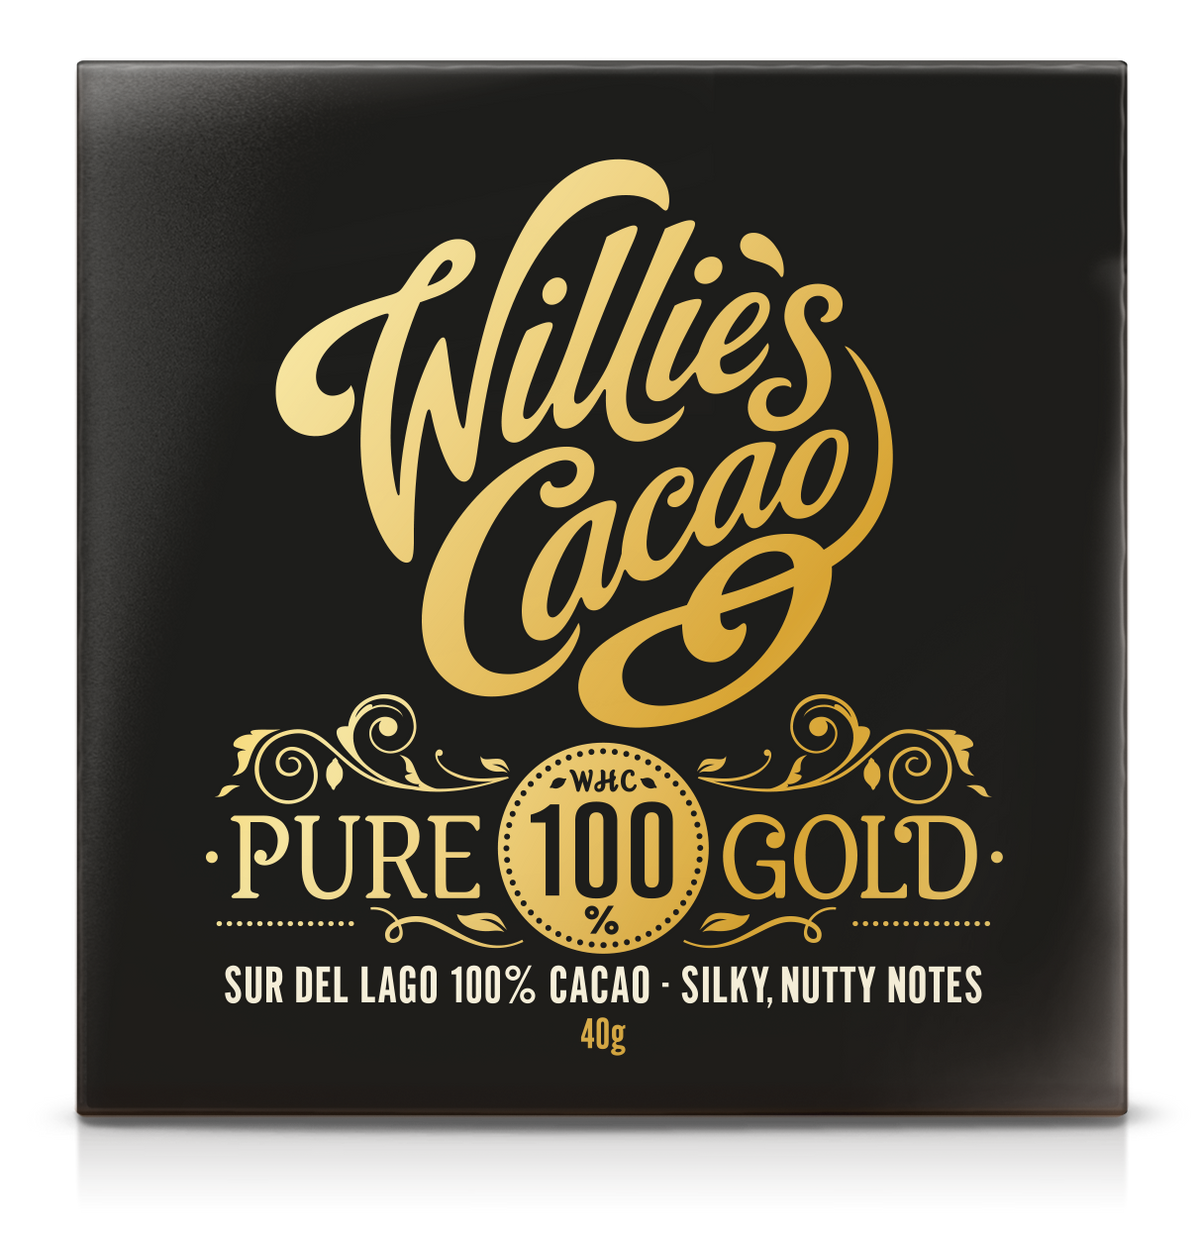 Willie's Cacao Pure 100% Gold